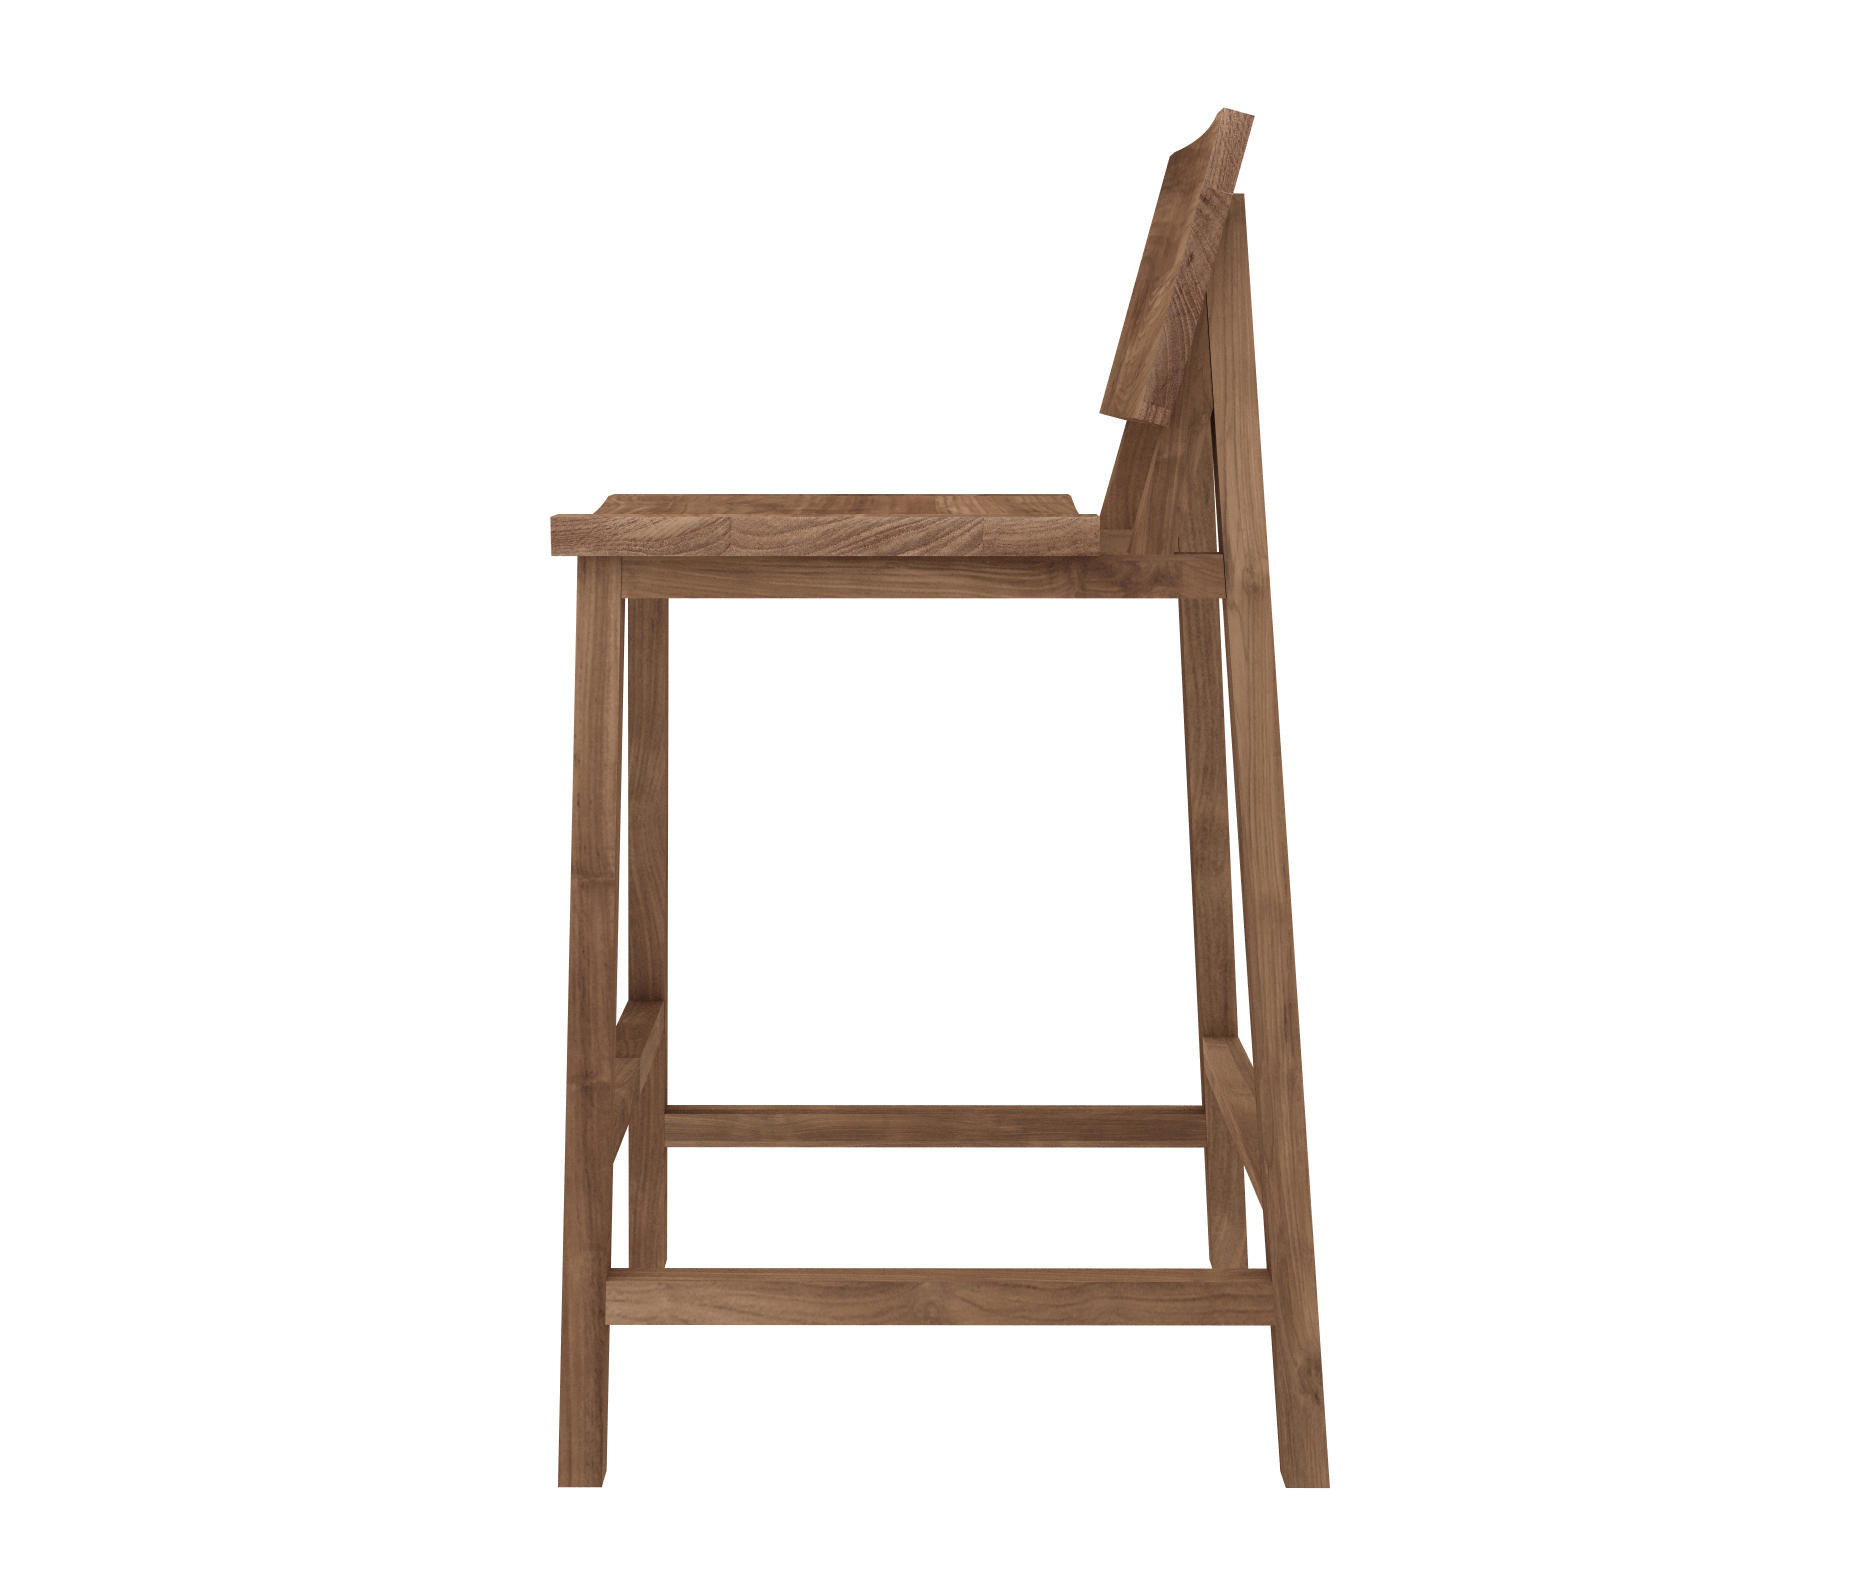 Teak n3 kitchen counter stool by ethnicraft bar stools